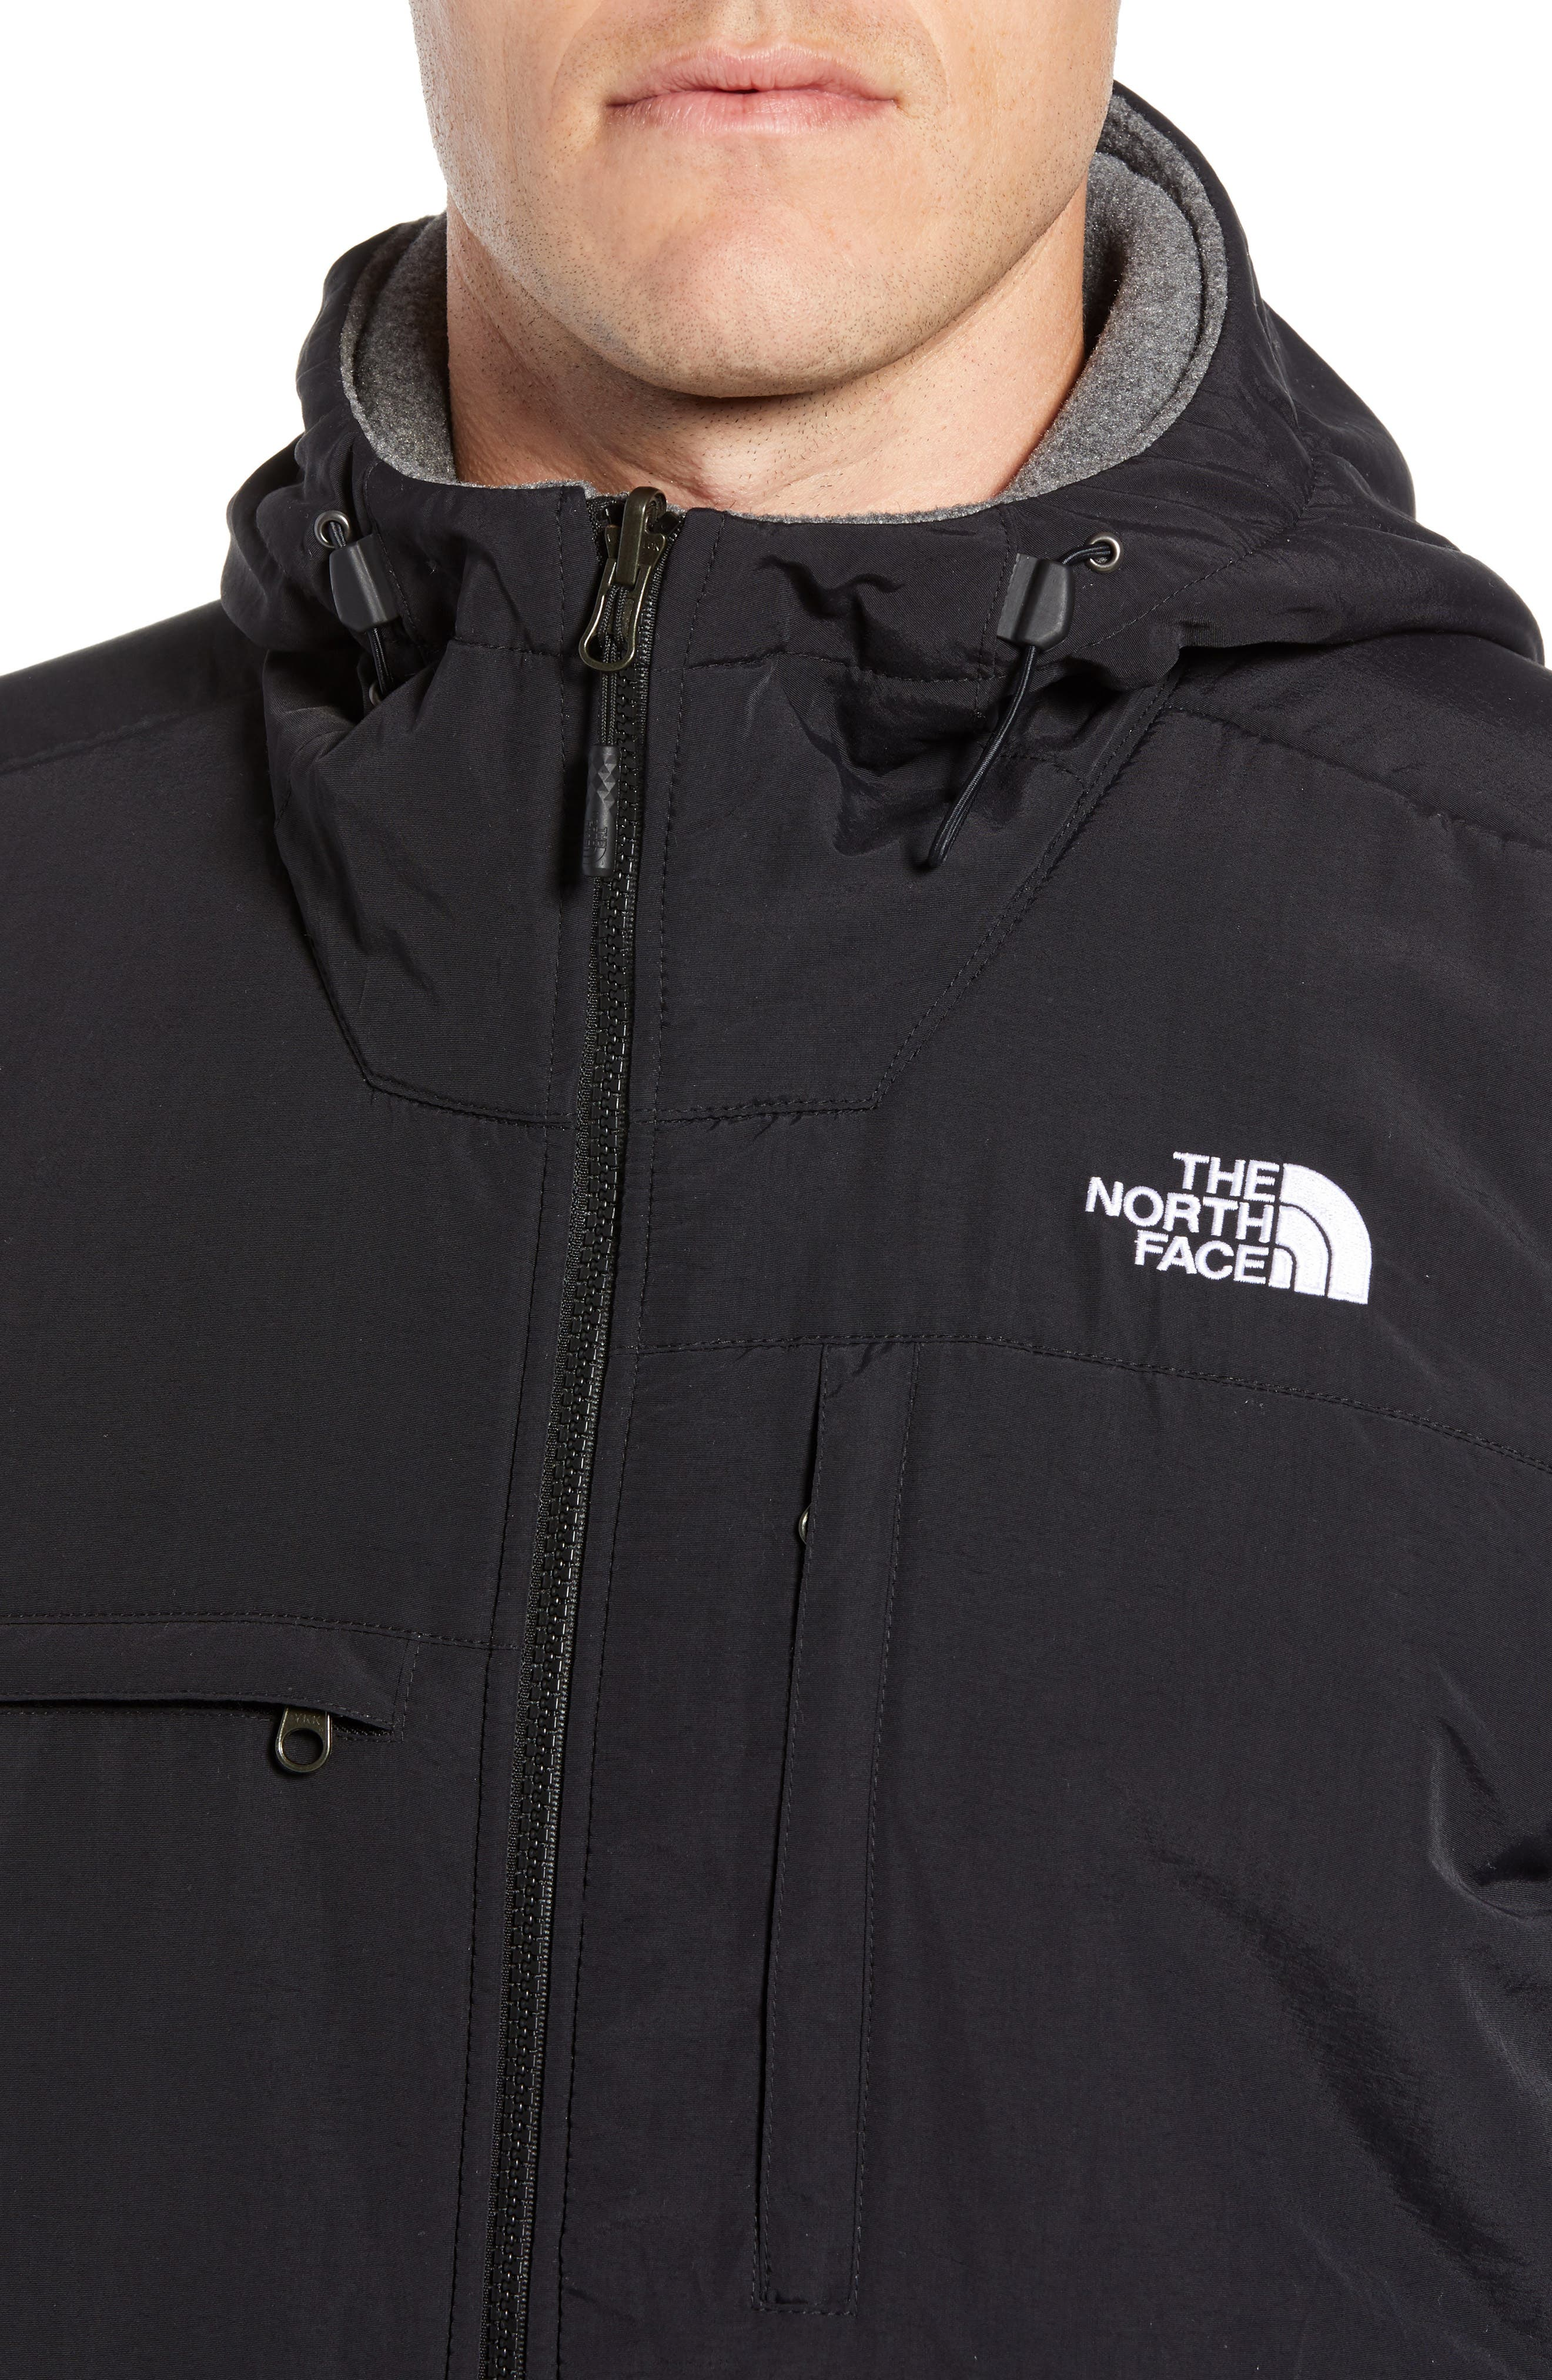 Denali 2 Hooded Jacket,                             Alternate thumbnail 4, color,                             RECYCLED CHARCOAL GREY HEATHER